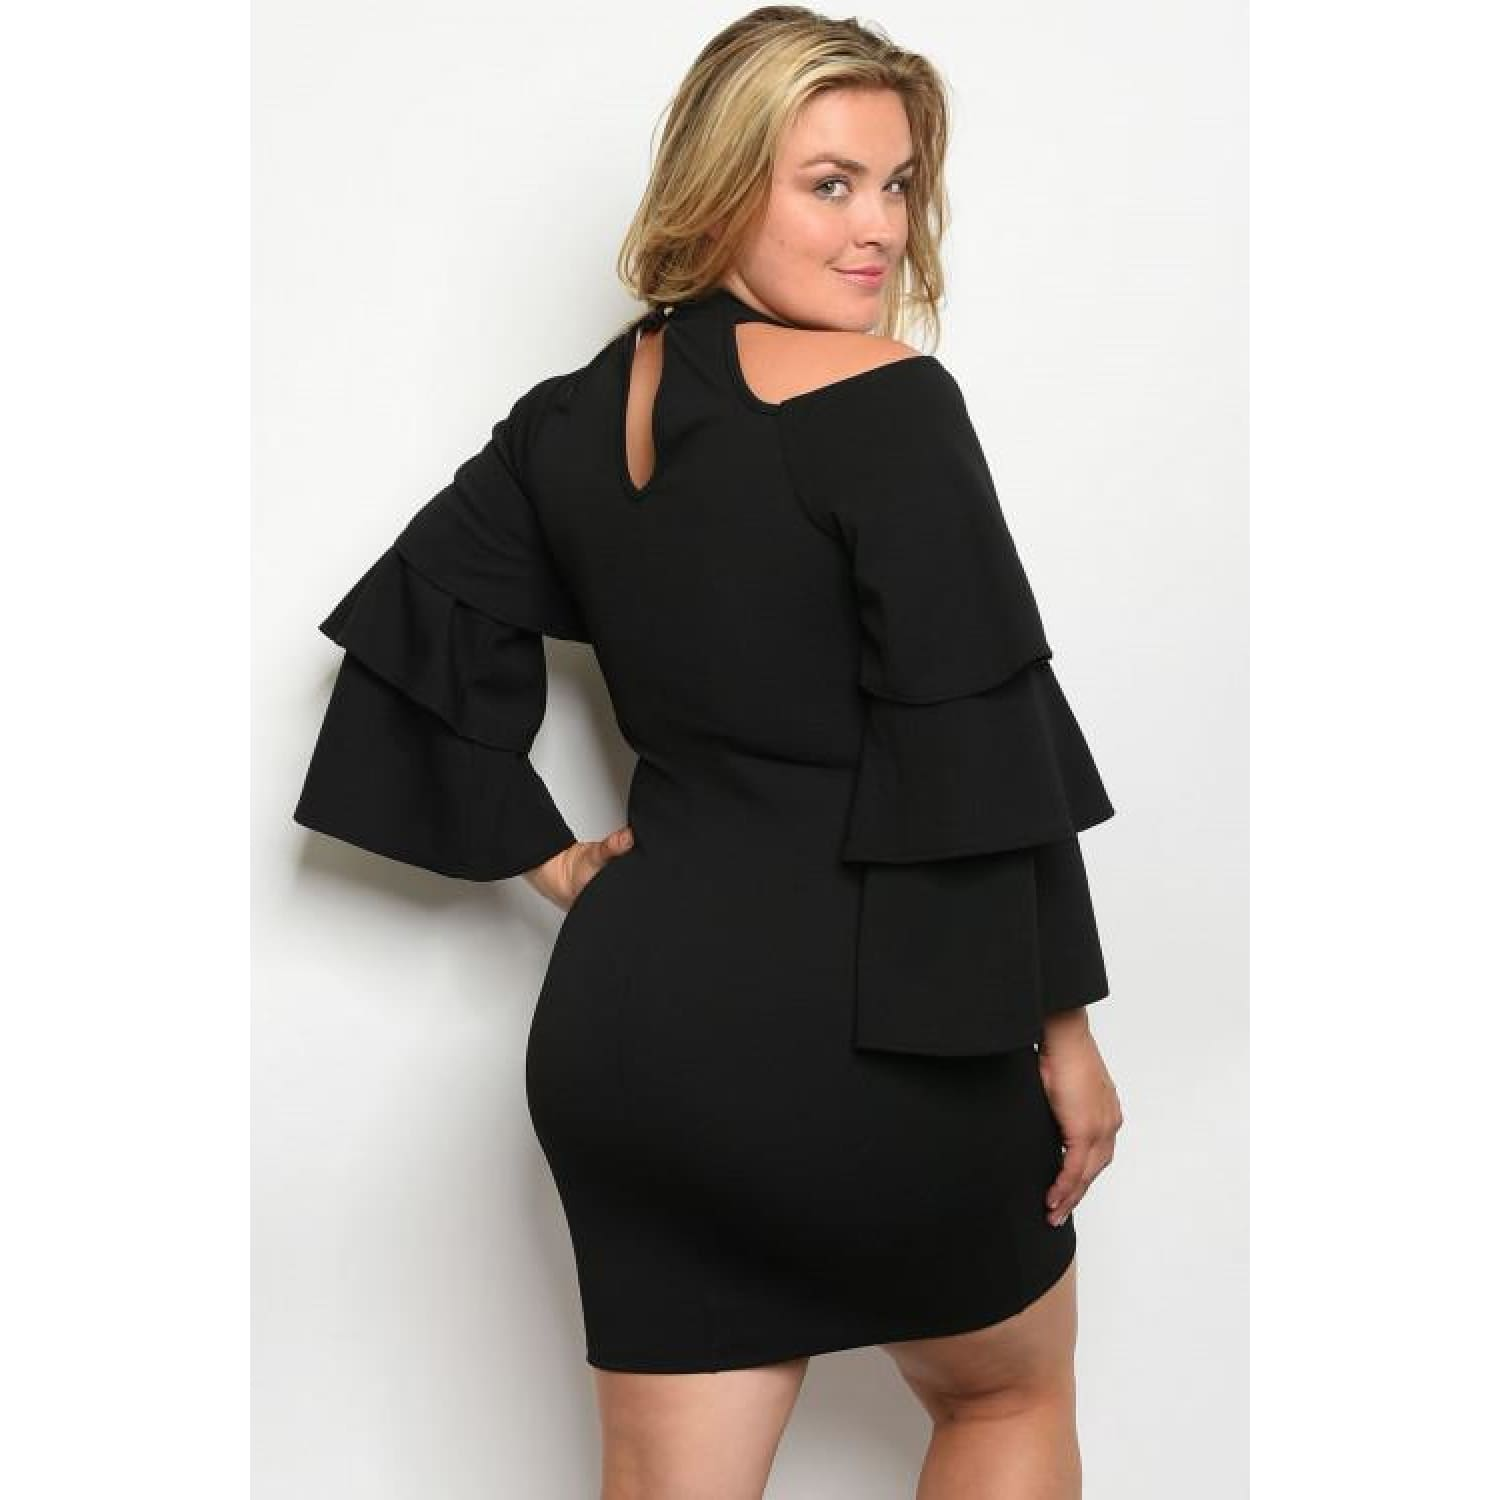 Black Plus Size Dress With Cold Shoulder Cutout - DRESSES